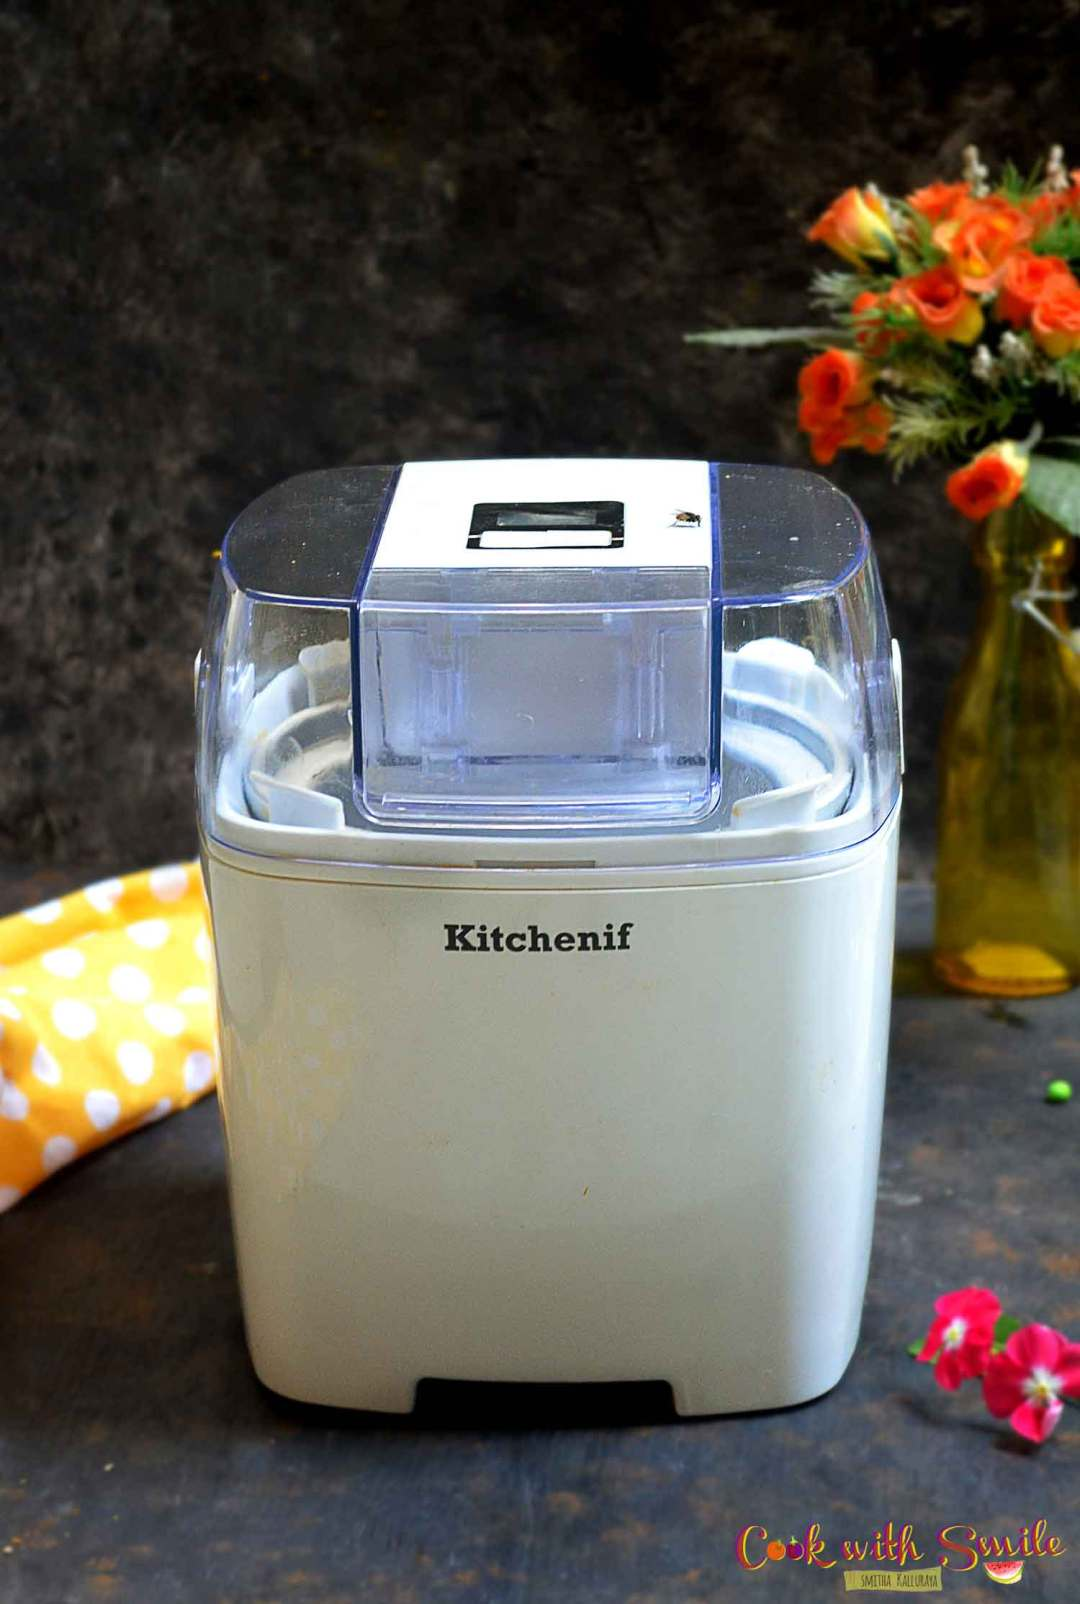 kitchenif icecream maker